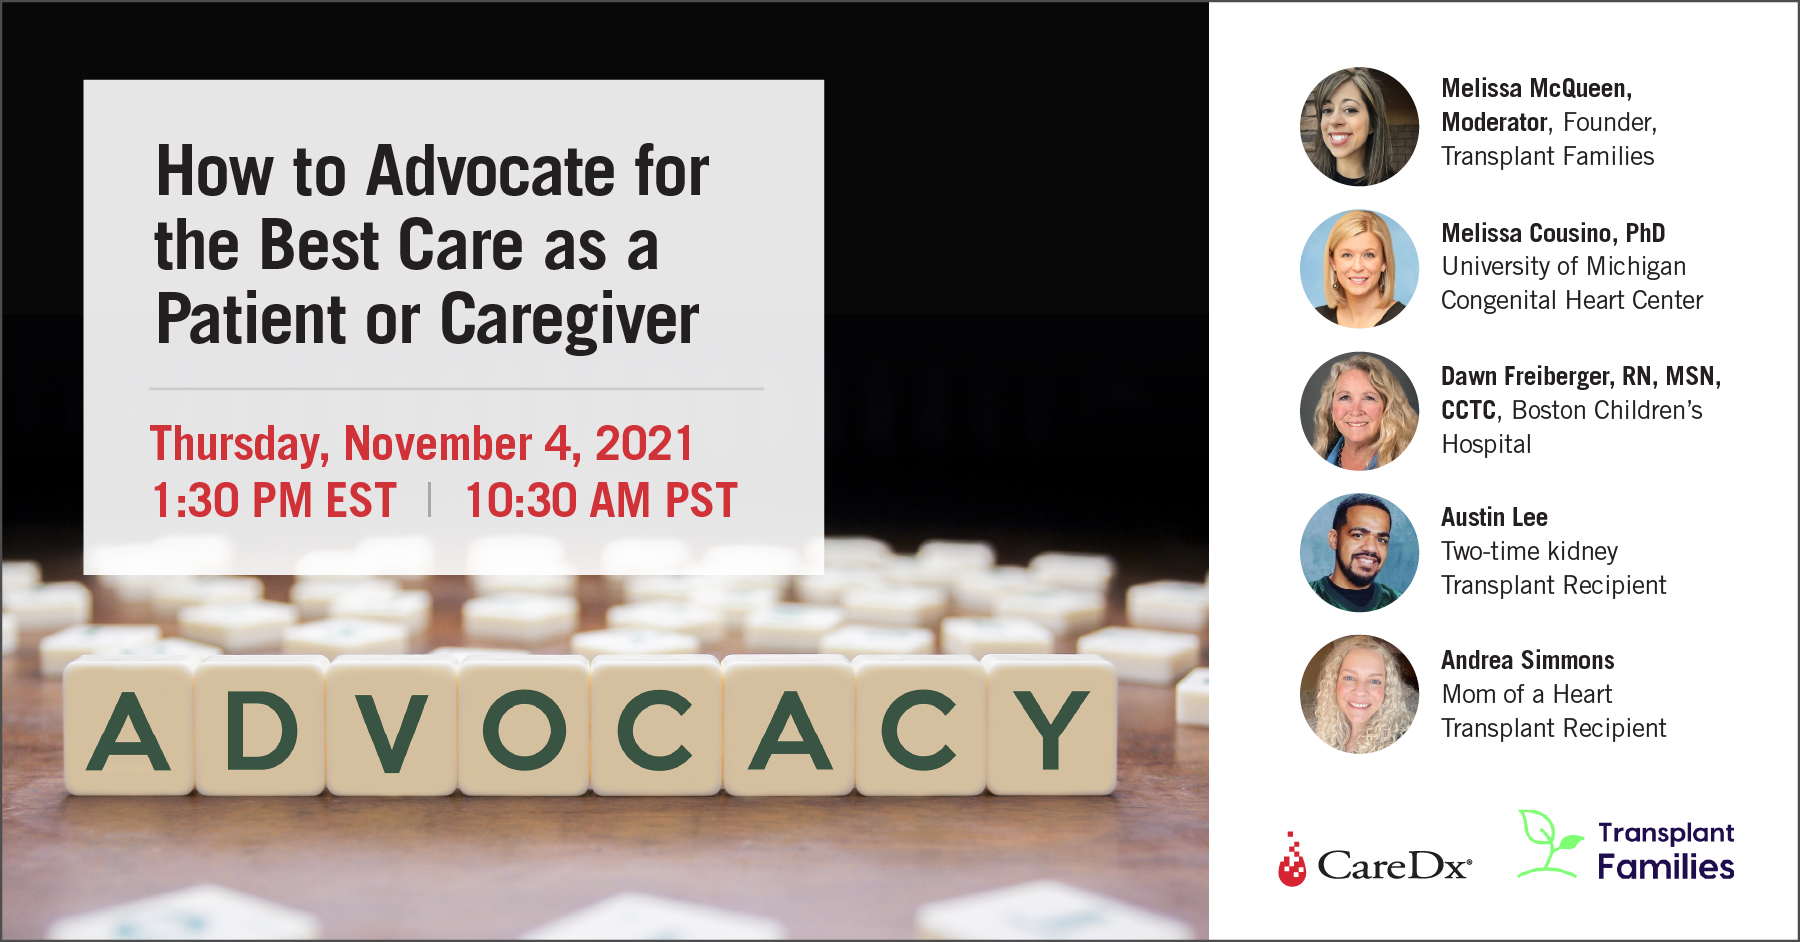 How to Advocate for the Best Care as a Patient or Caregiver